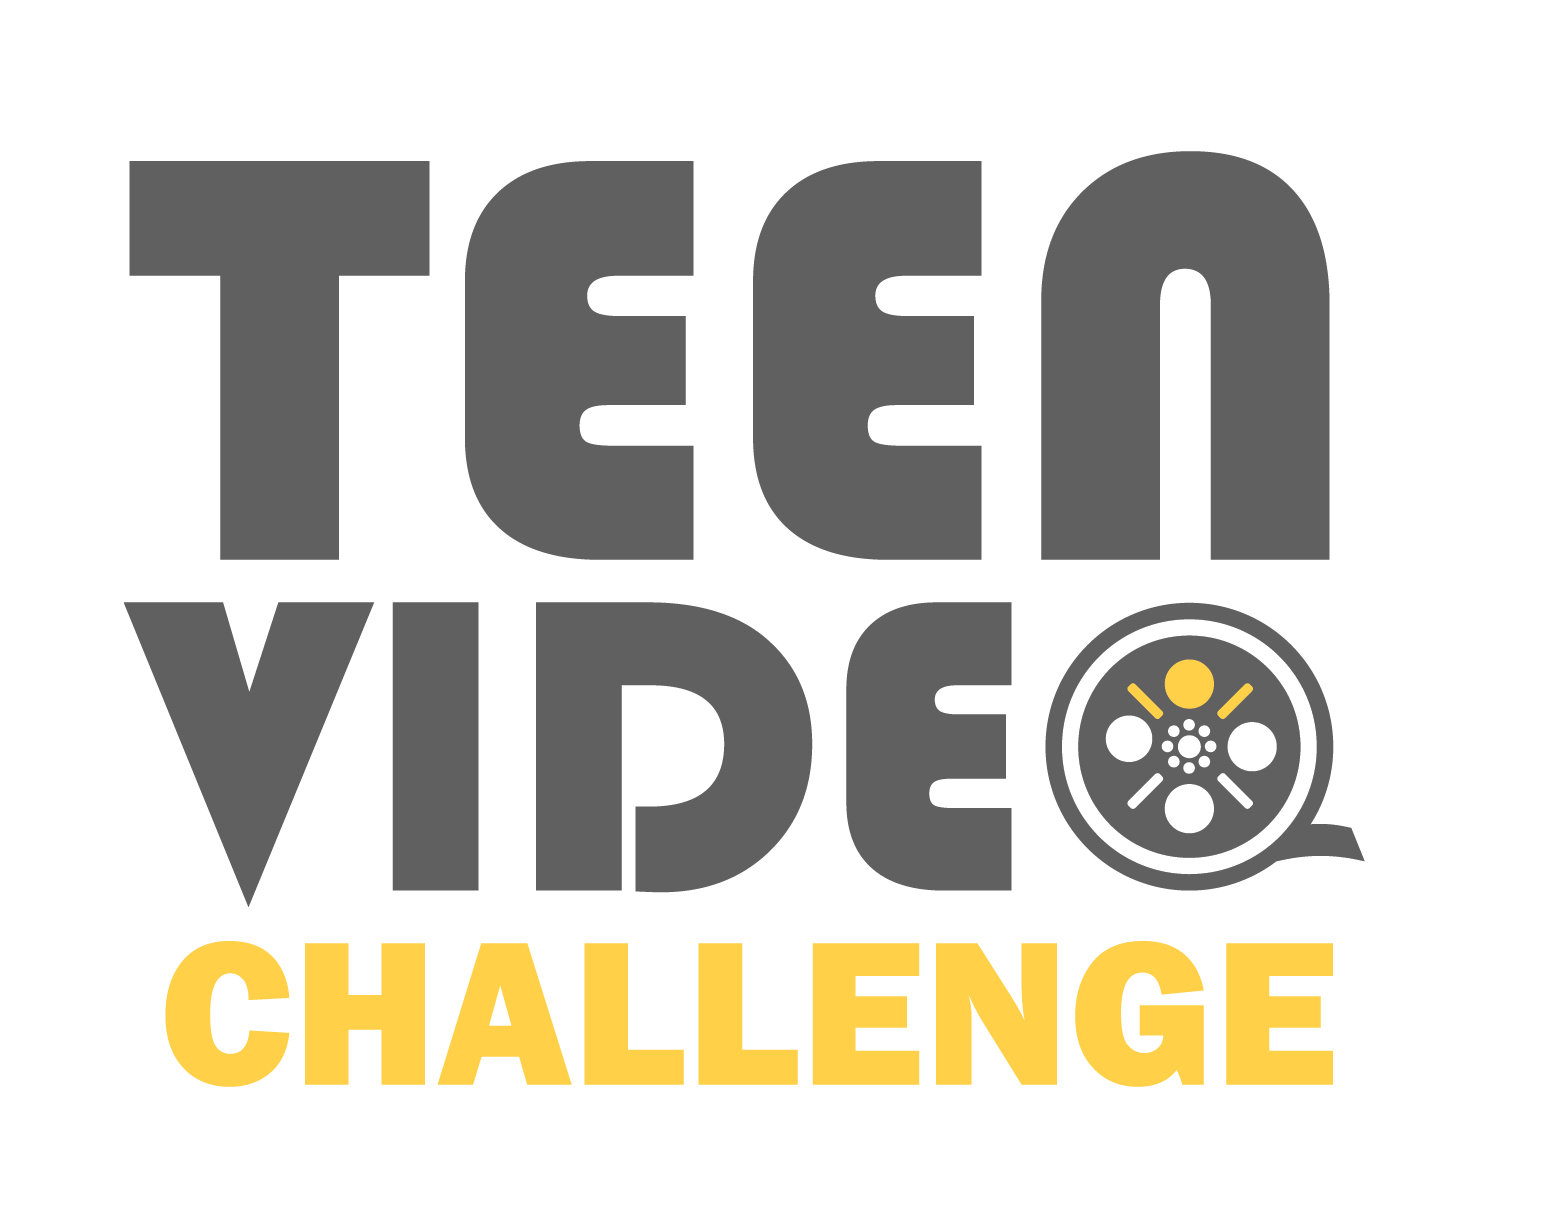 CSLP Teen Video Challenge logo with link to info